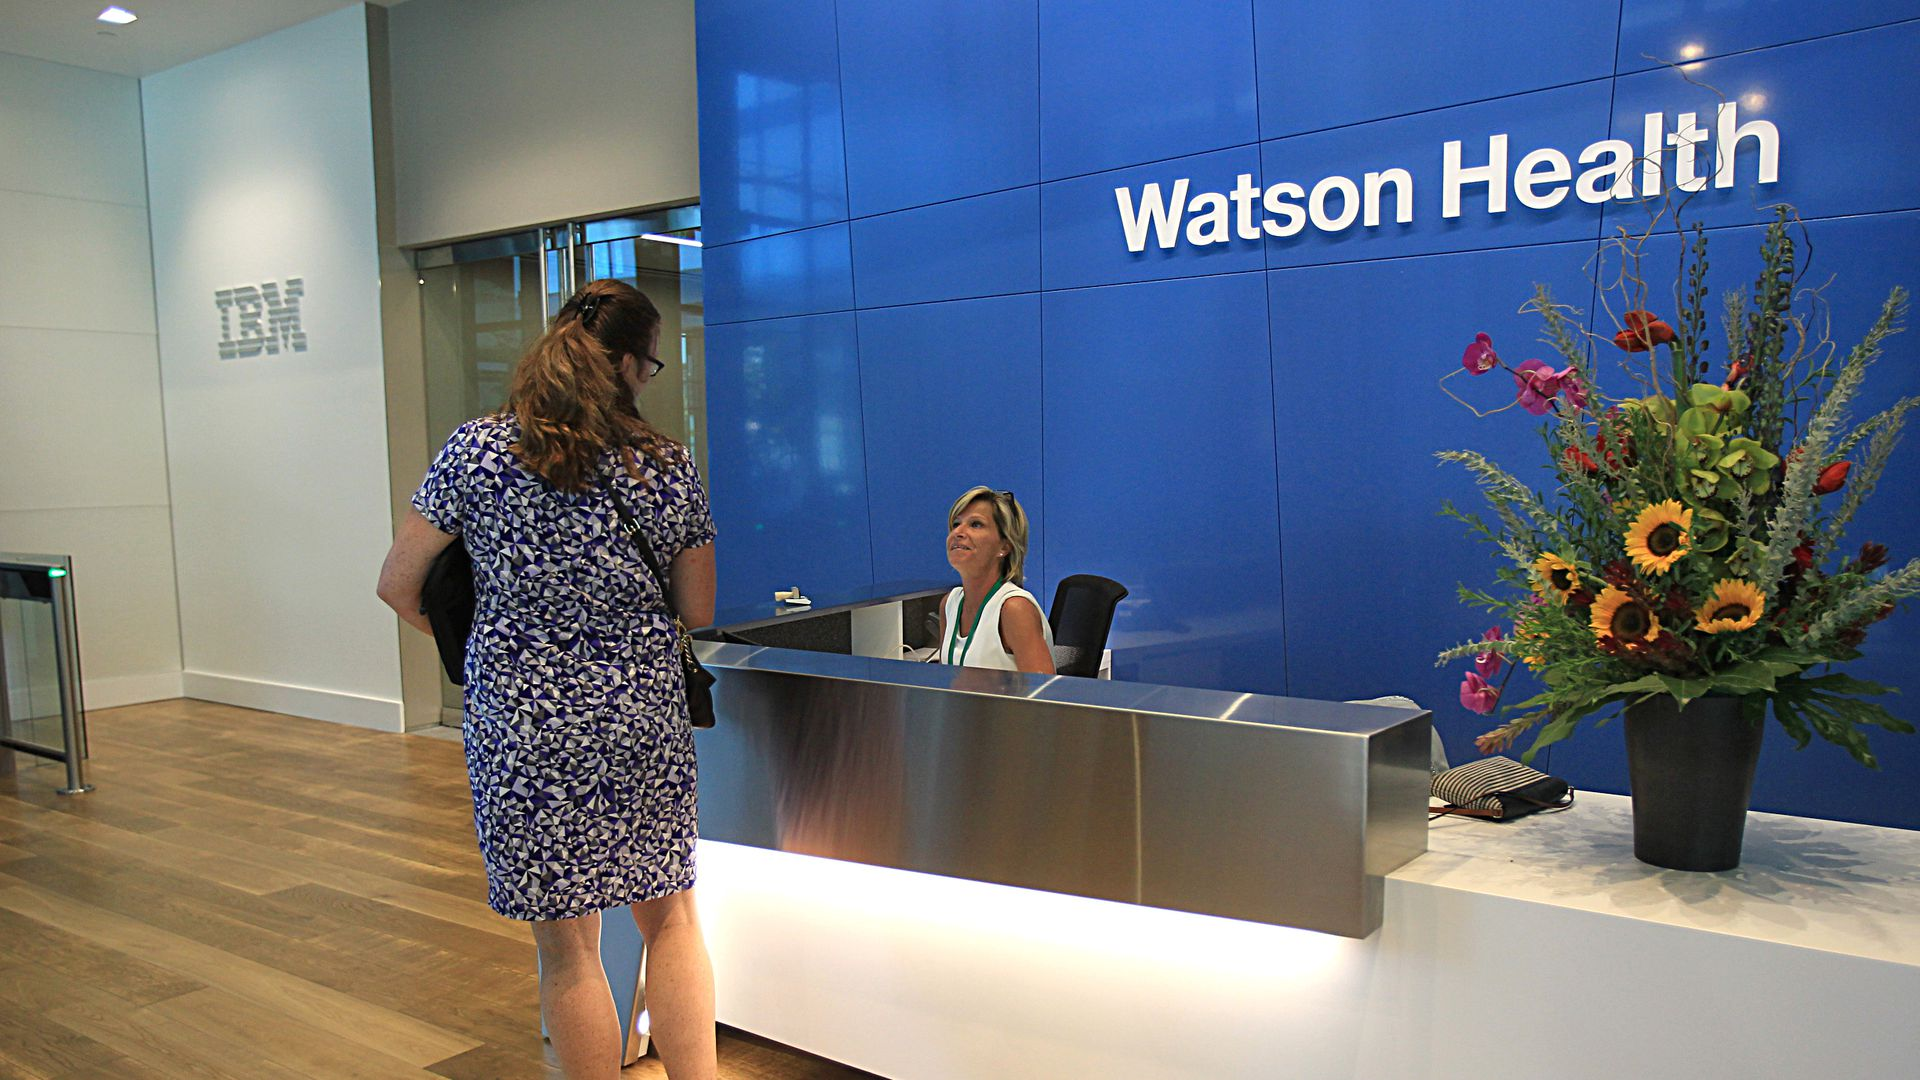 Two women in the lobby of IBM Watson Health headquarters in Massachusetts.